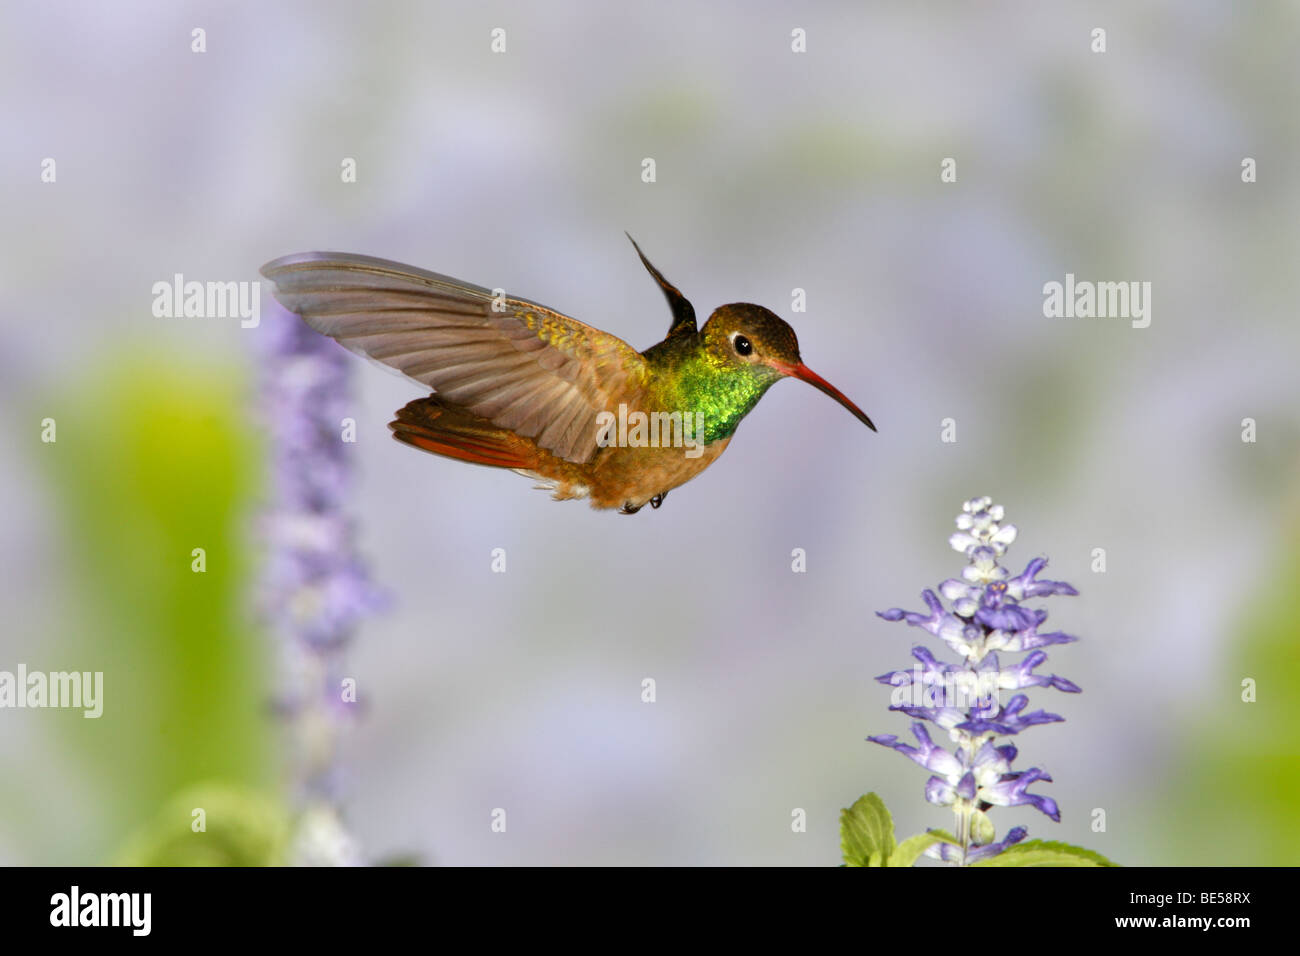 Buff-bellied Hummingbird seeking nectar from Salvia Blossoms - Stock Image